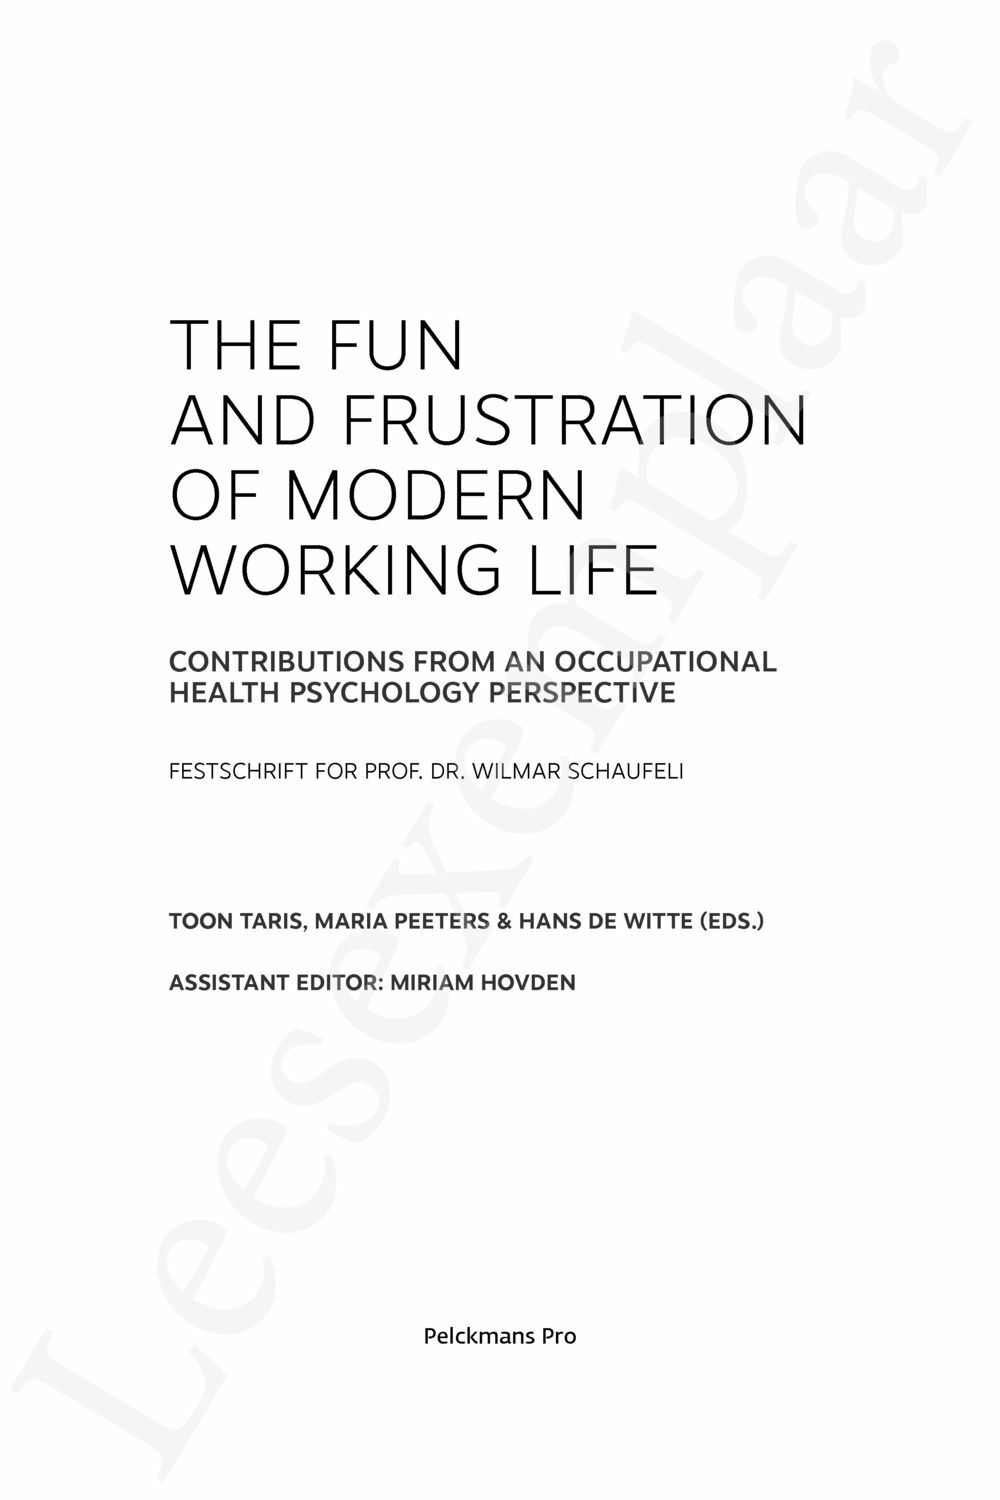 Preview: The Fun and Frustration of Modern Working Life